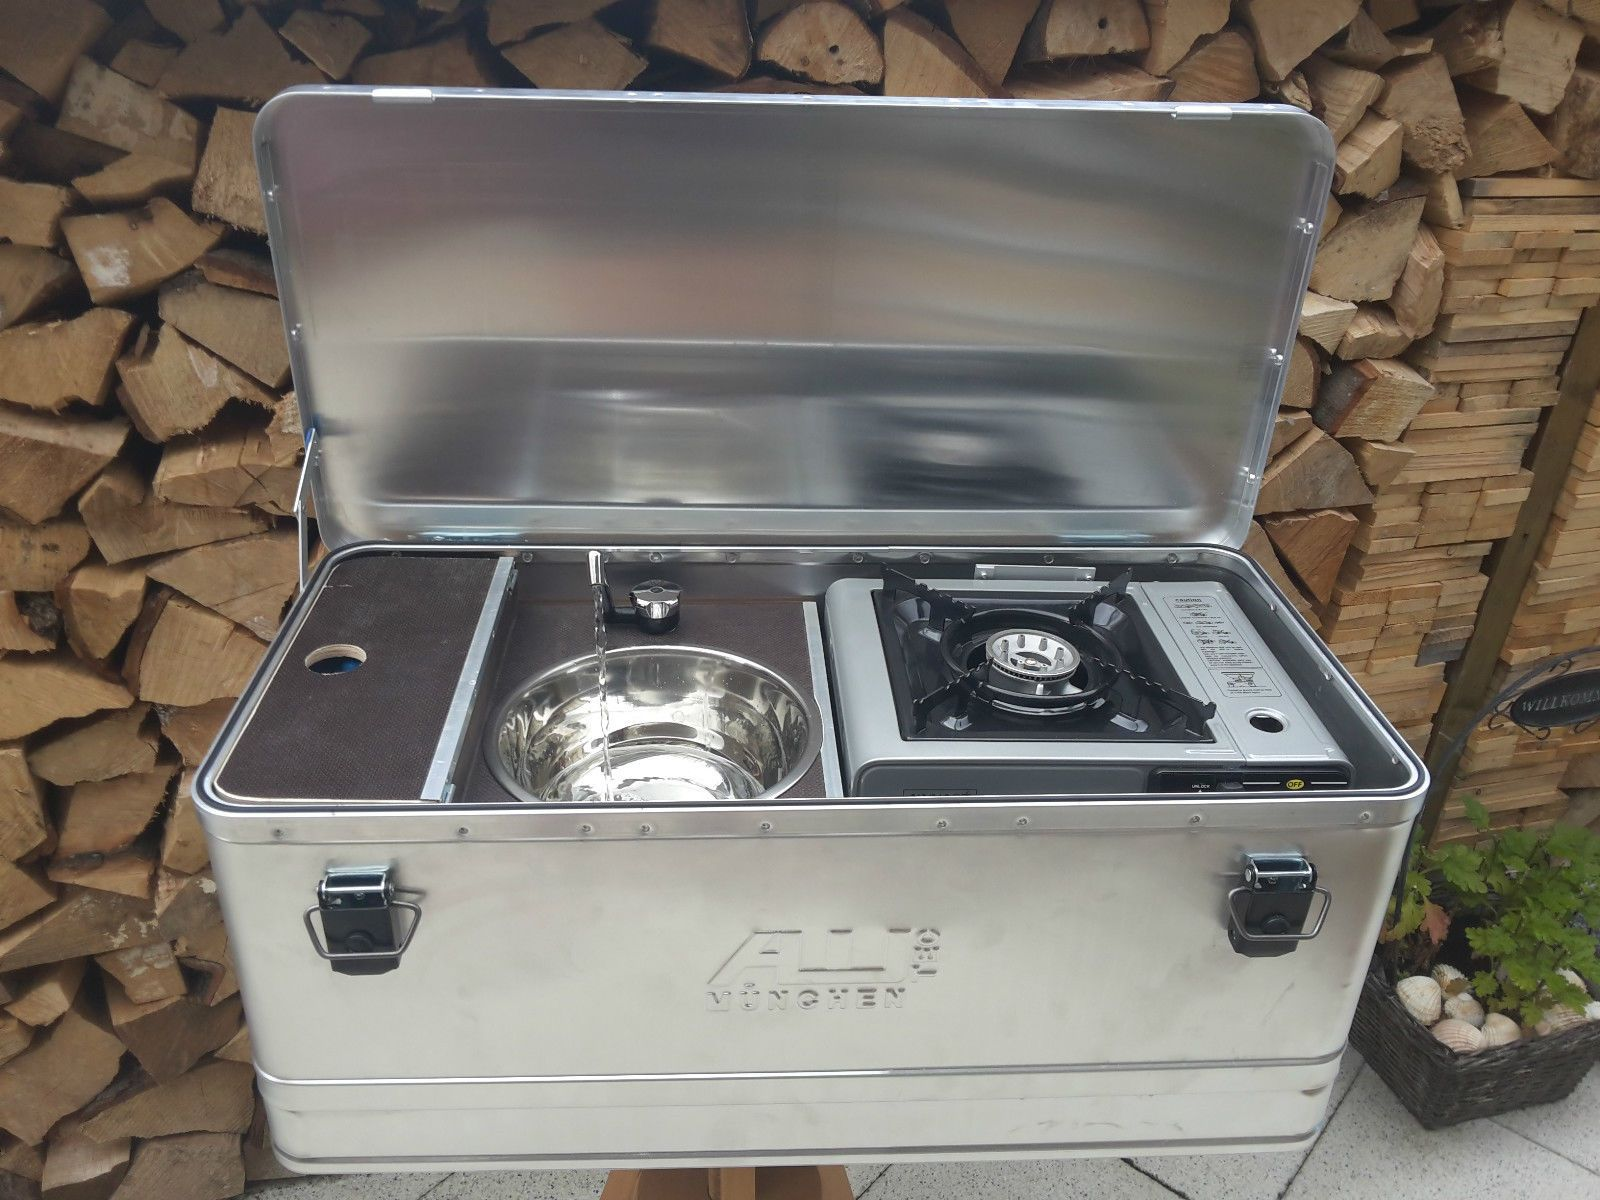 T5 Küche Selber Bauen Mobile Camping Kitchen Box, Caddy Tramper Others, Outdoor